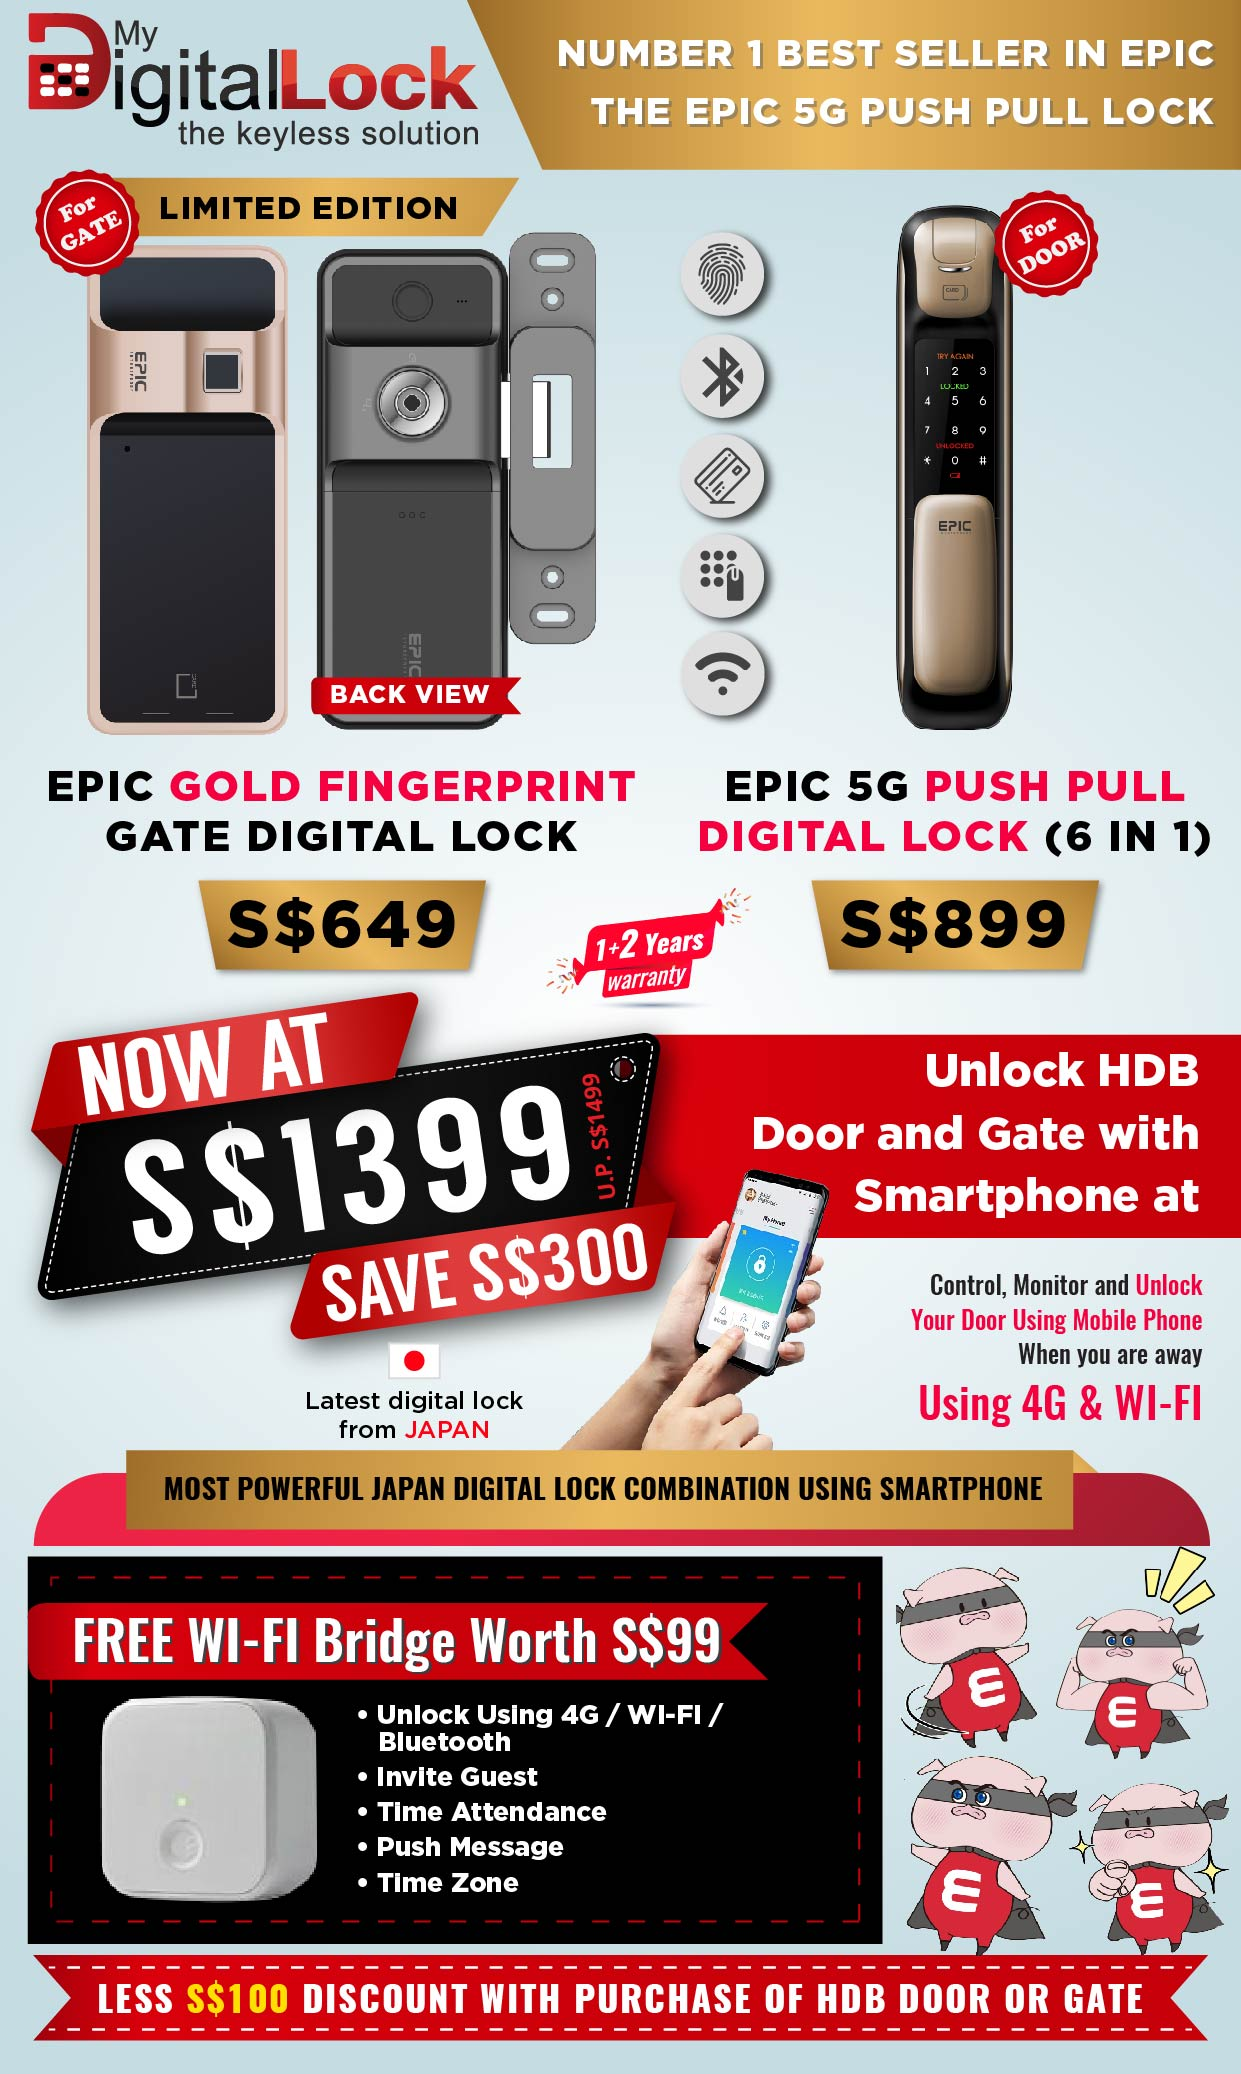 Buy EPIC 5G Push pull Gate Digital Lock @ My Digital Lock. Call 9067 7990